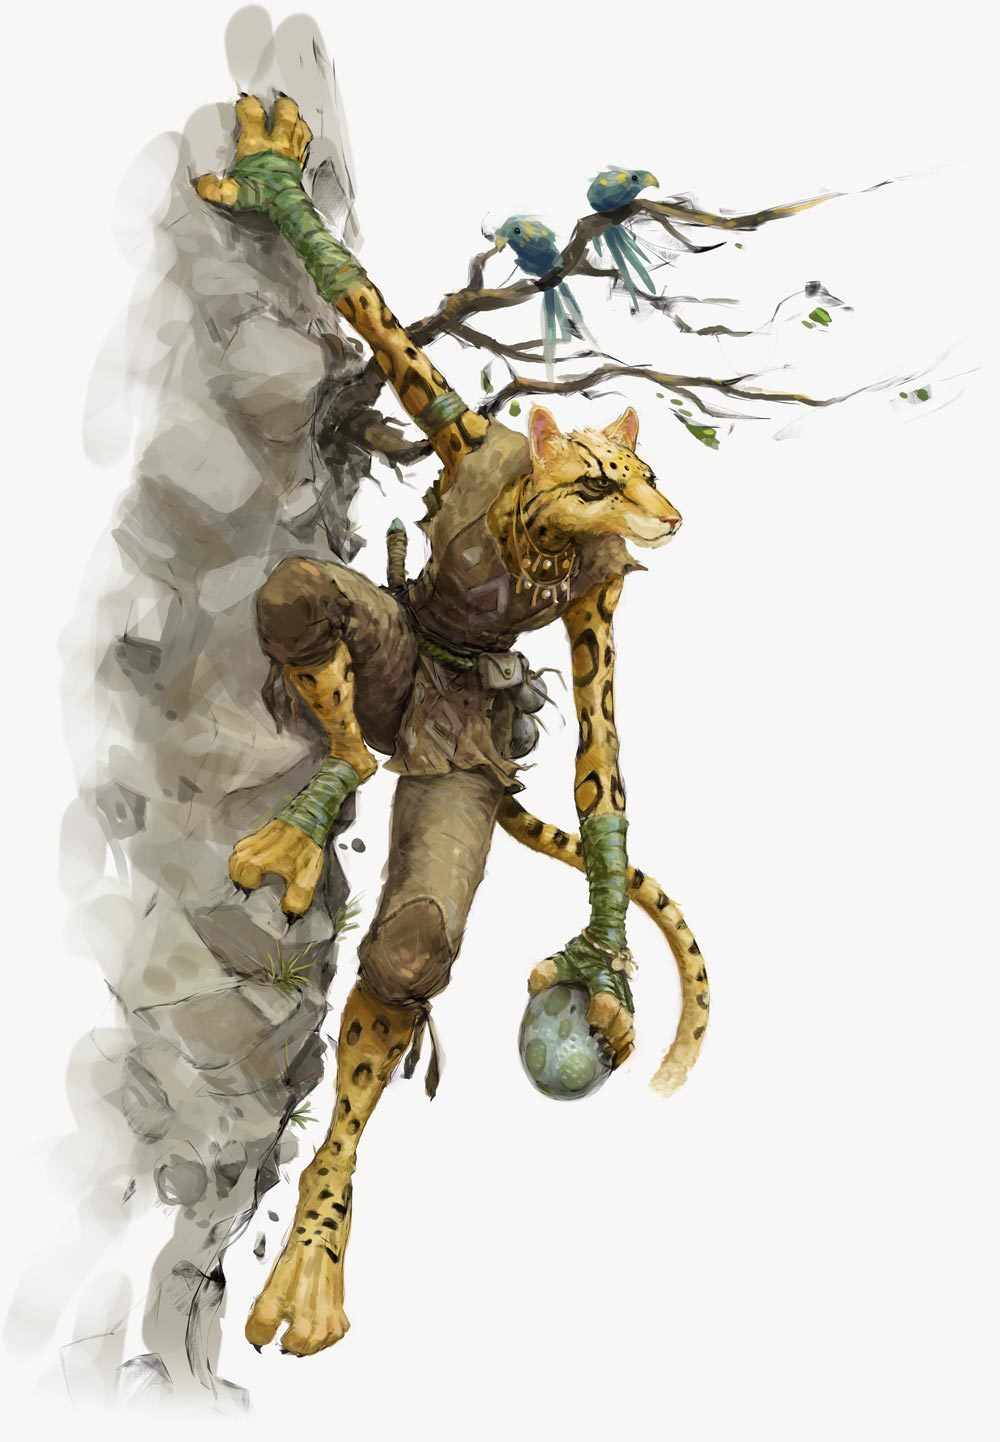 Tabaxi Forgotten Realms Wiki Fandom The tabaxi's free skills help to further pad the bard's already excellent skills. tabaxi forgotten realms wiki fandom